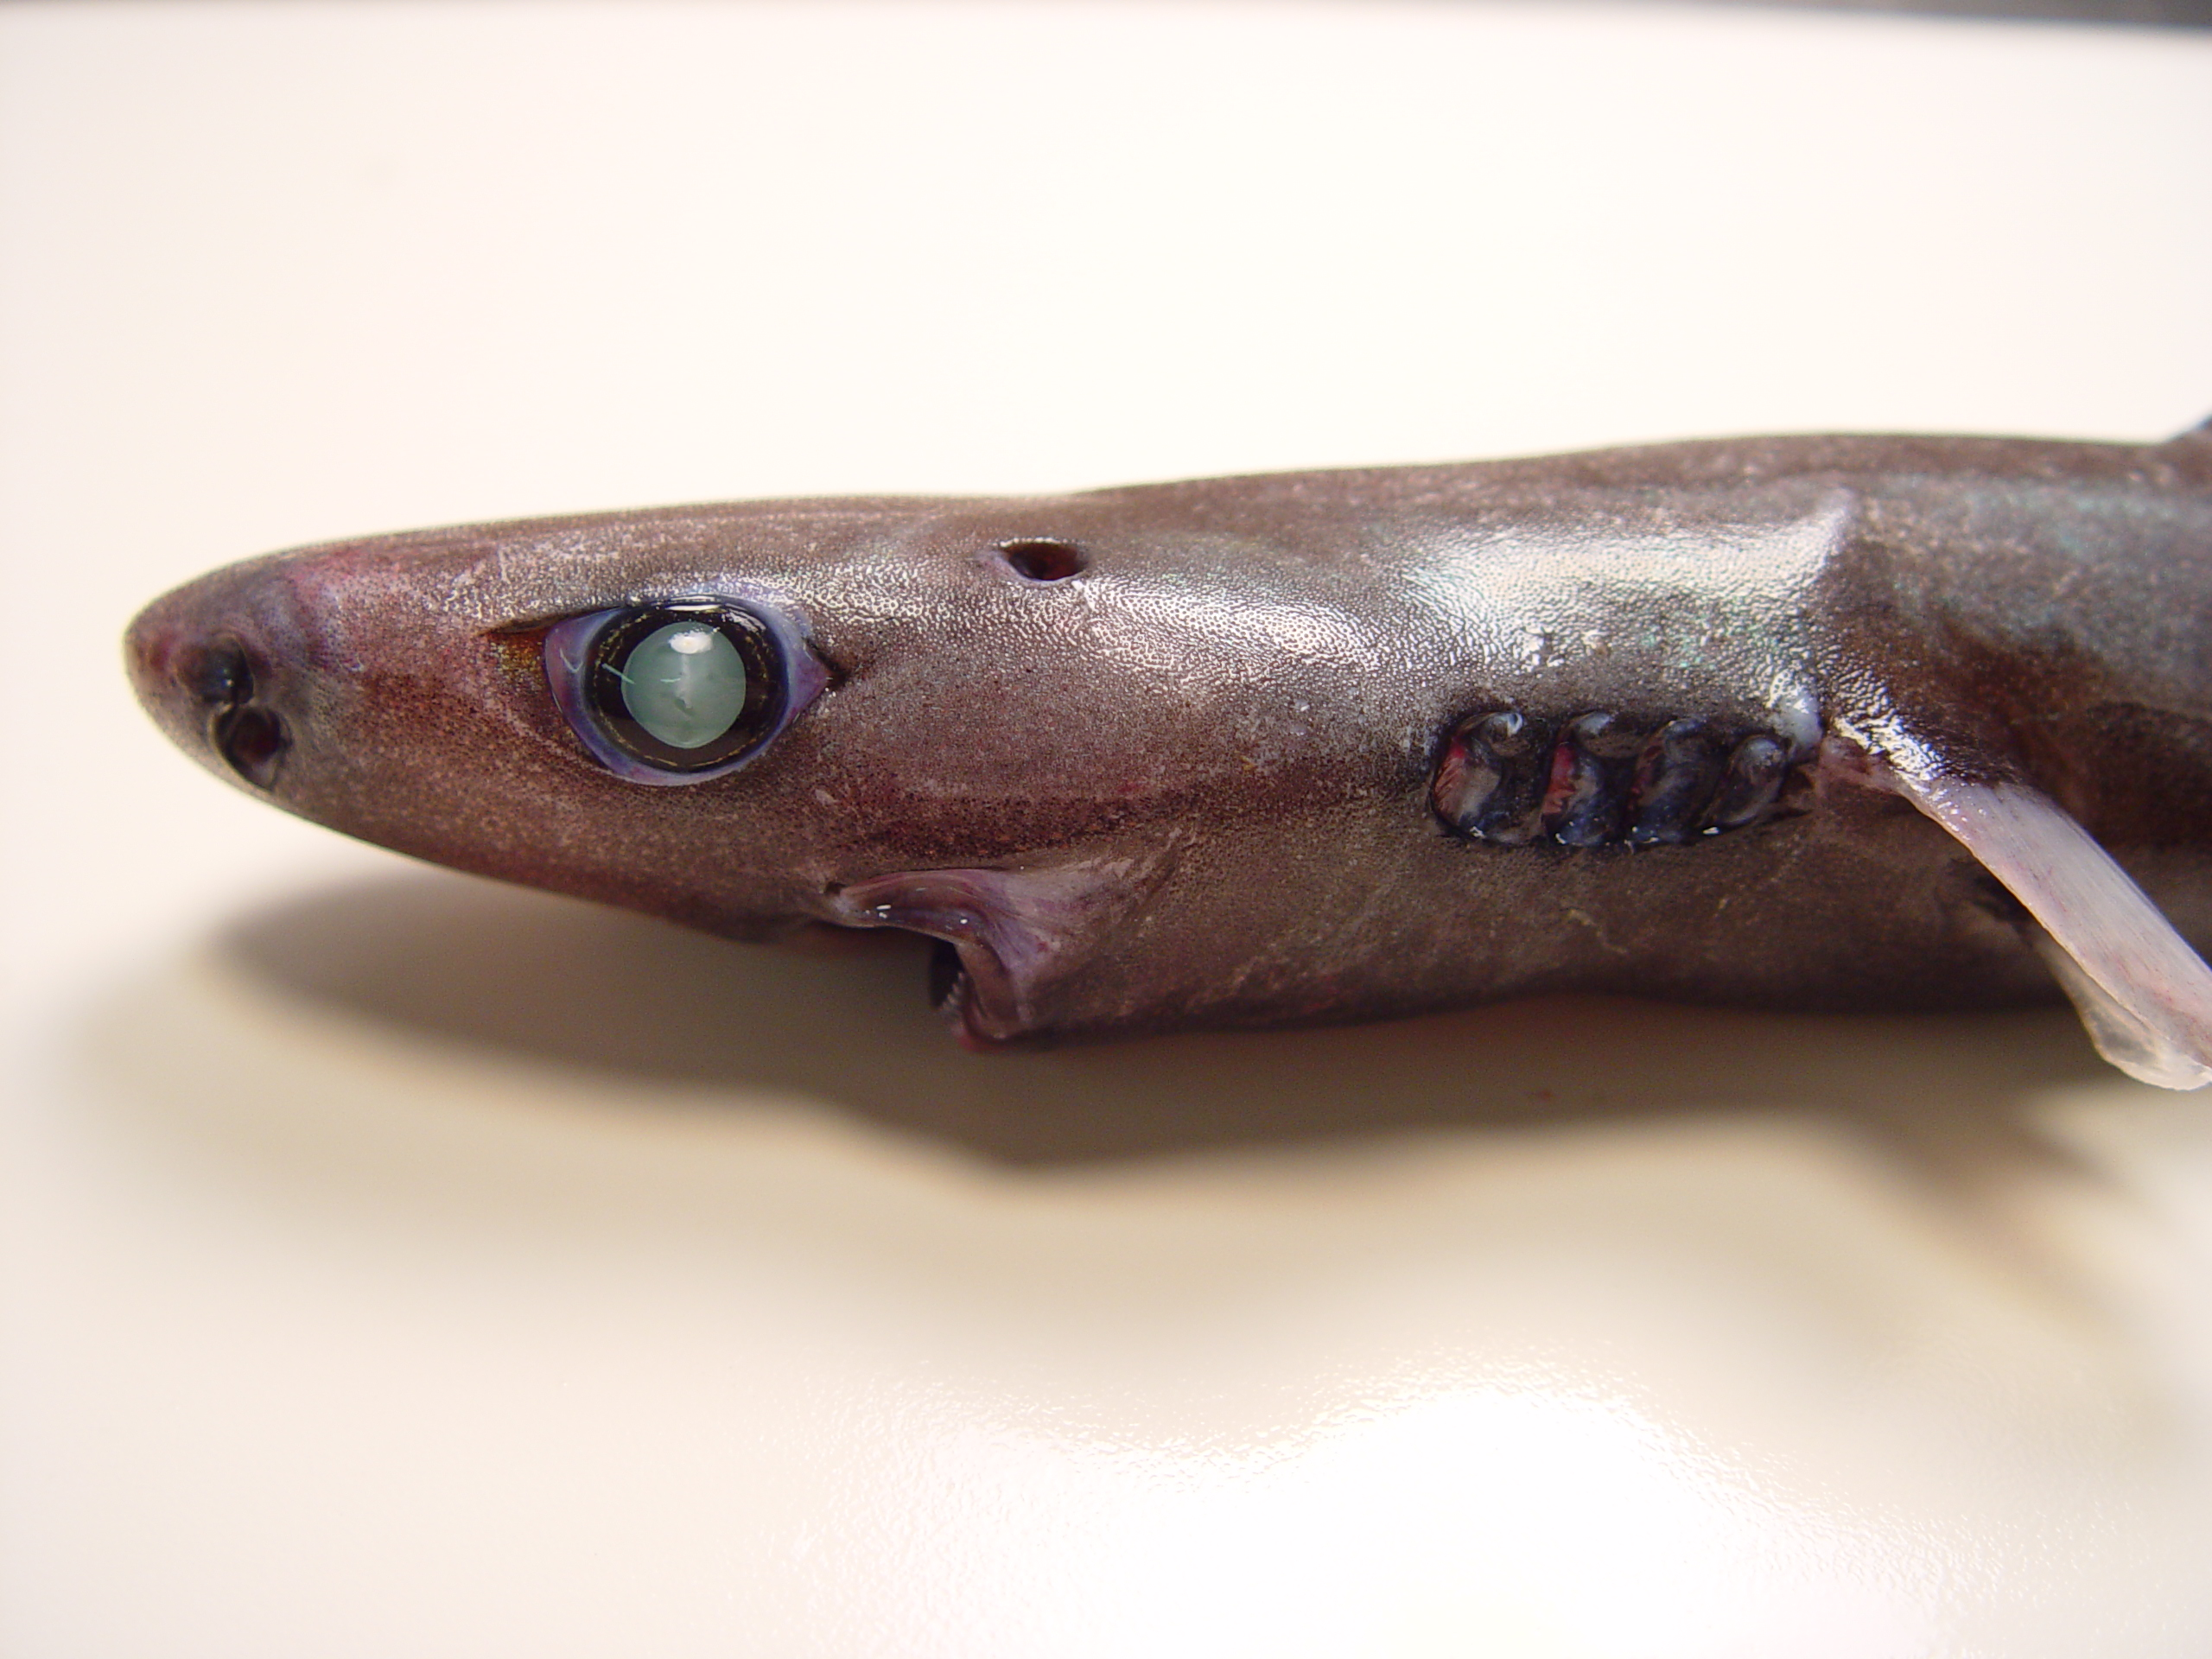 https://upload.wikimedia.org/wikipedia/commons/e/e3/Smooth_lanternshark_nmfs2.jpg